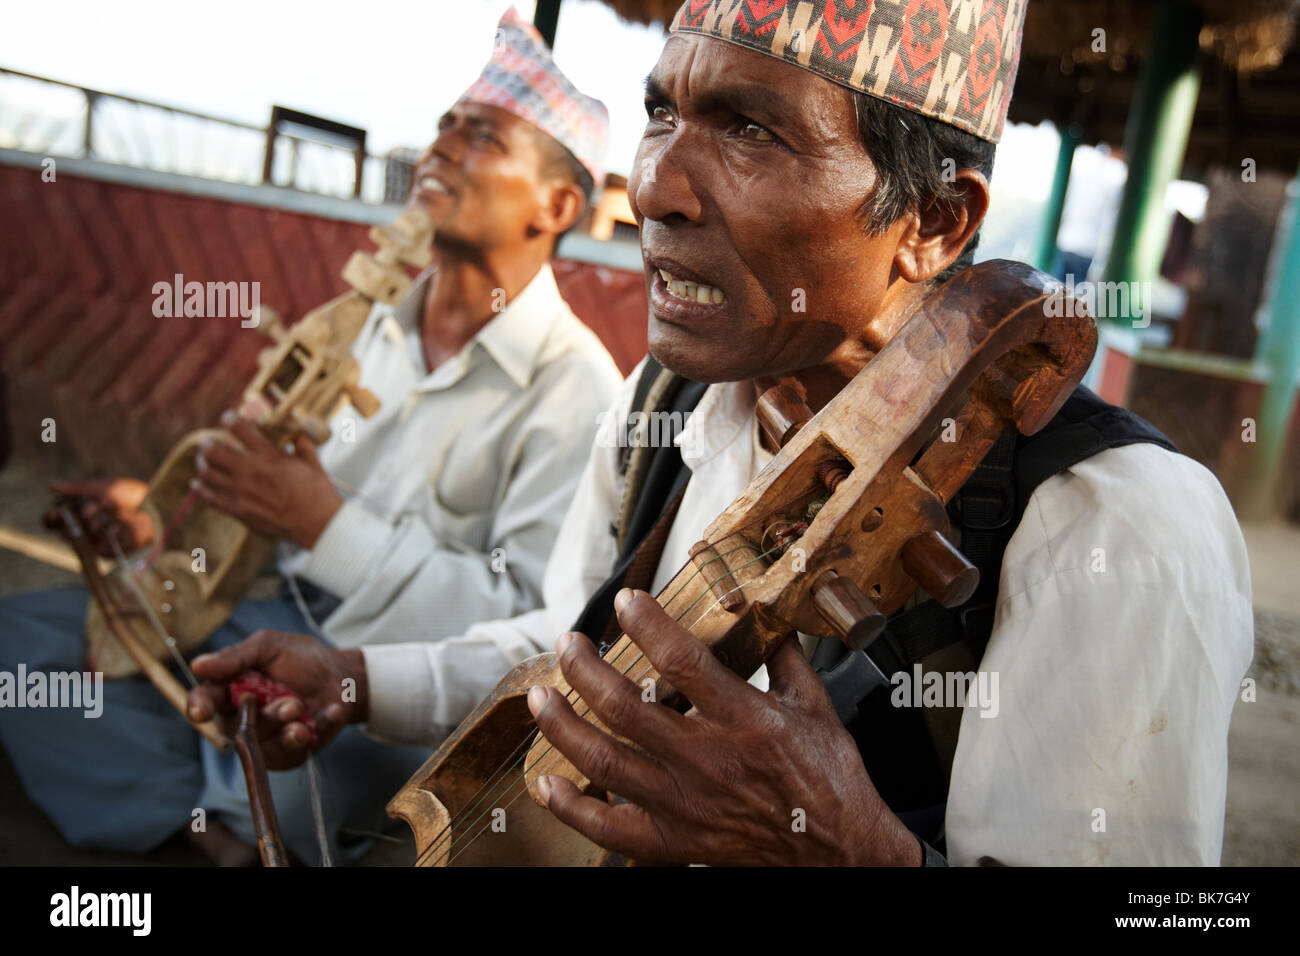 Musicians play a traditional string instrument at Begnas Lake near Pokhara, Nepal on Tuesday October 27, 2009. - Stock Image